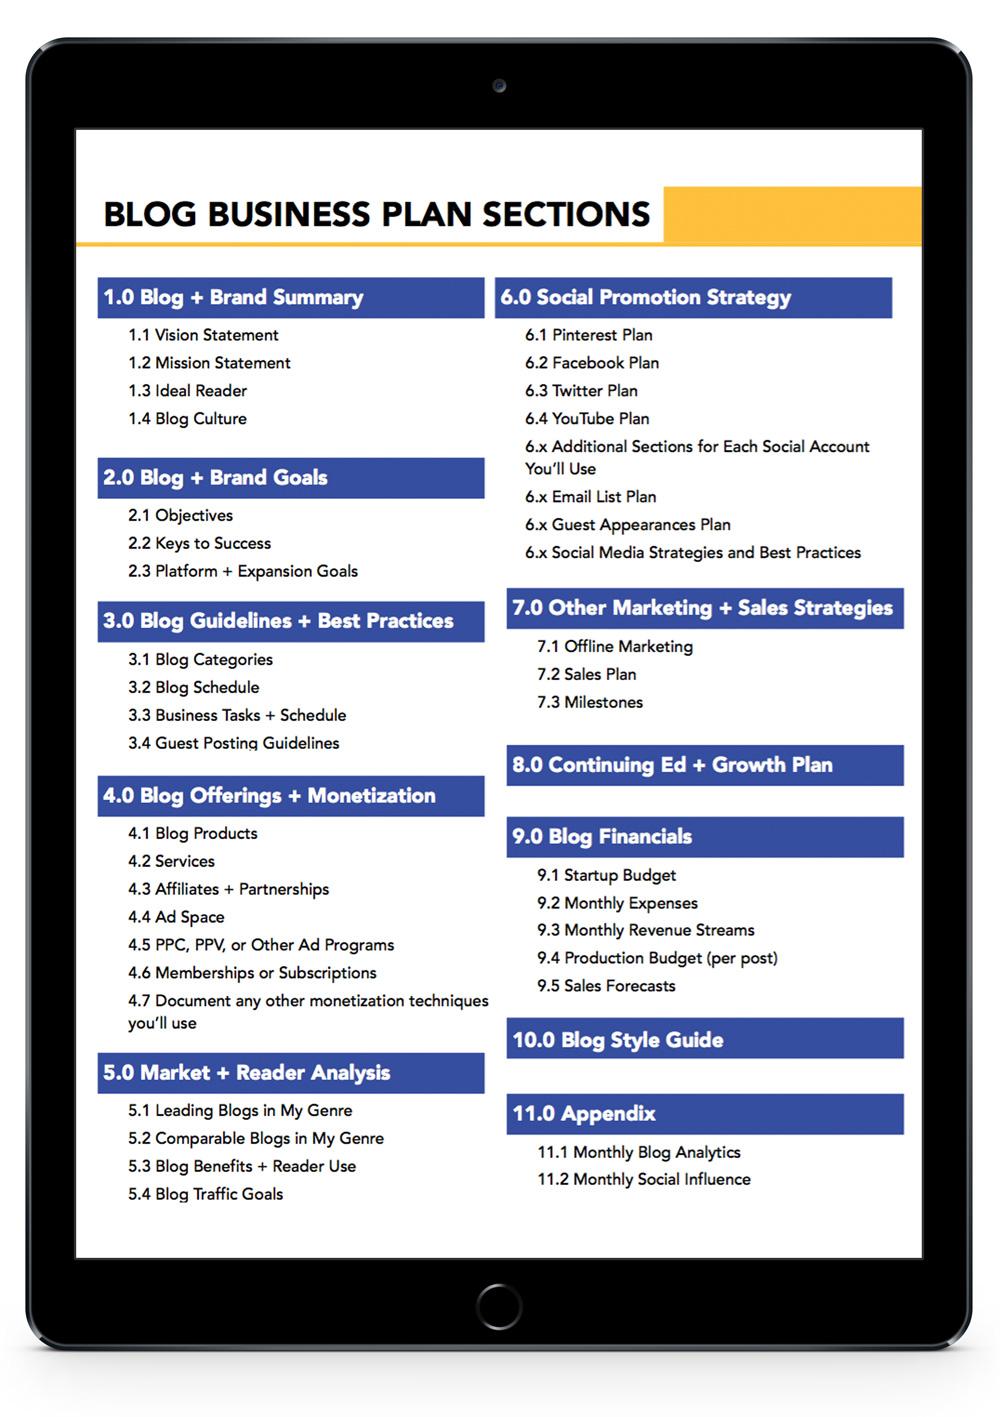 Blog business plan: The ultimate guide, template, and workbook on how to create a business plan for your blog